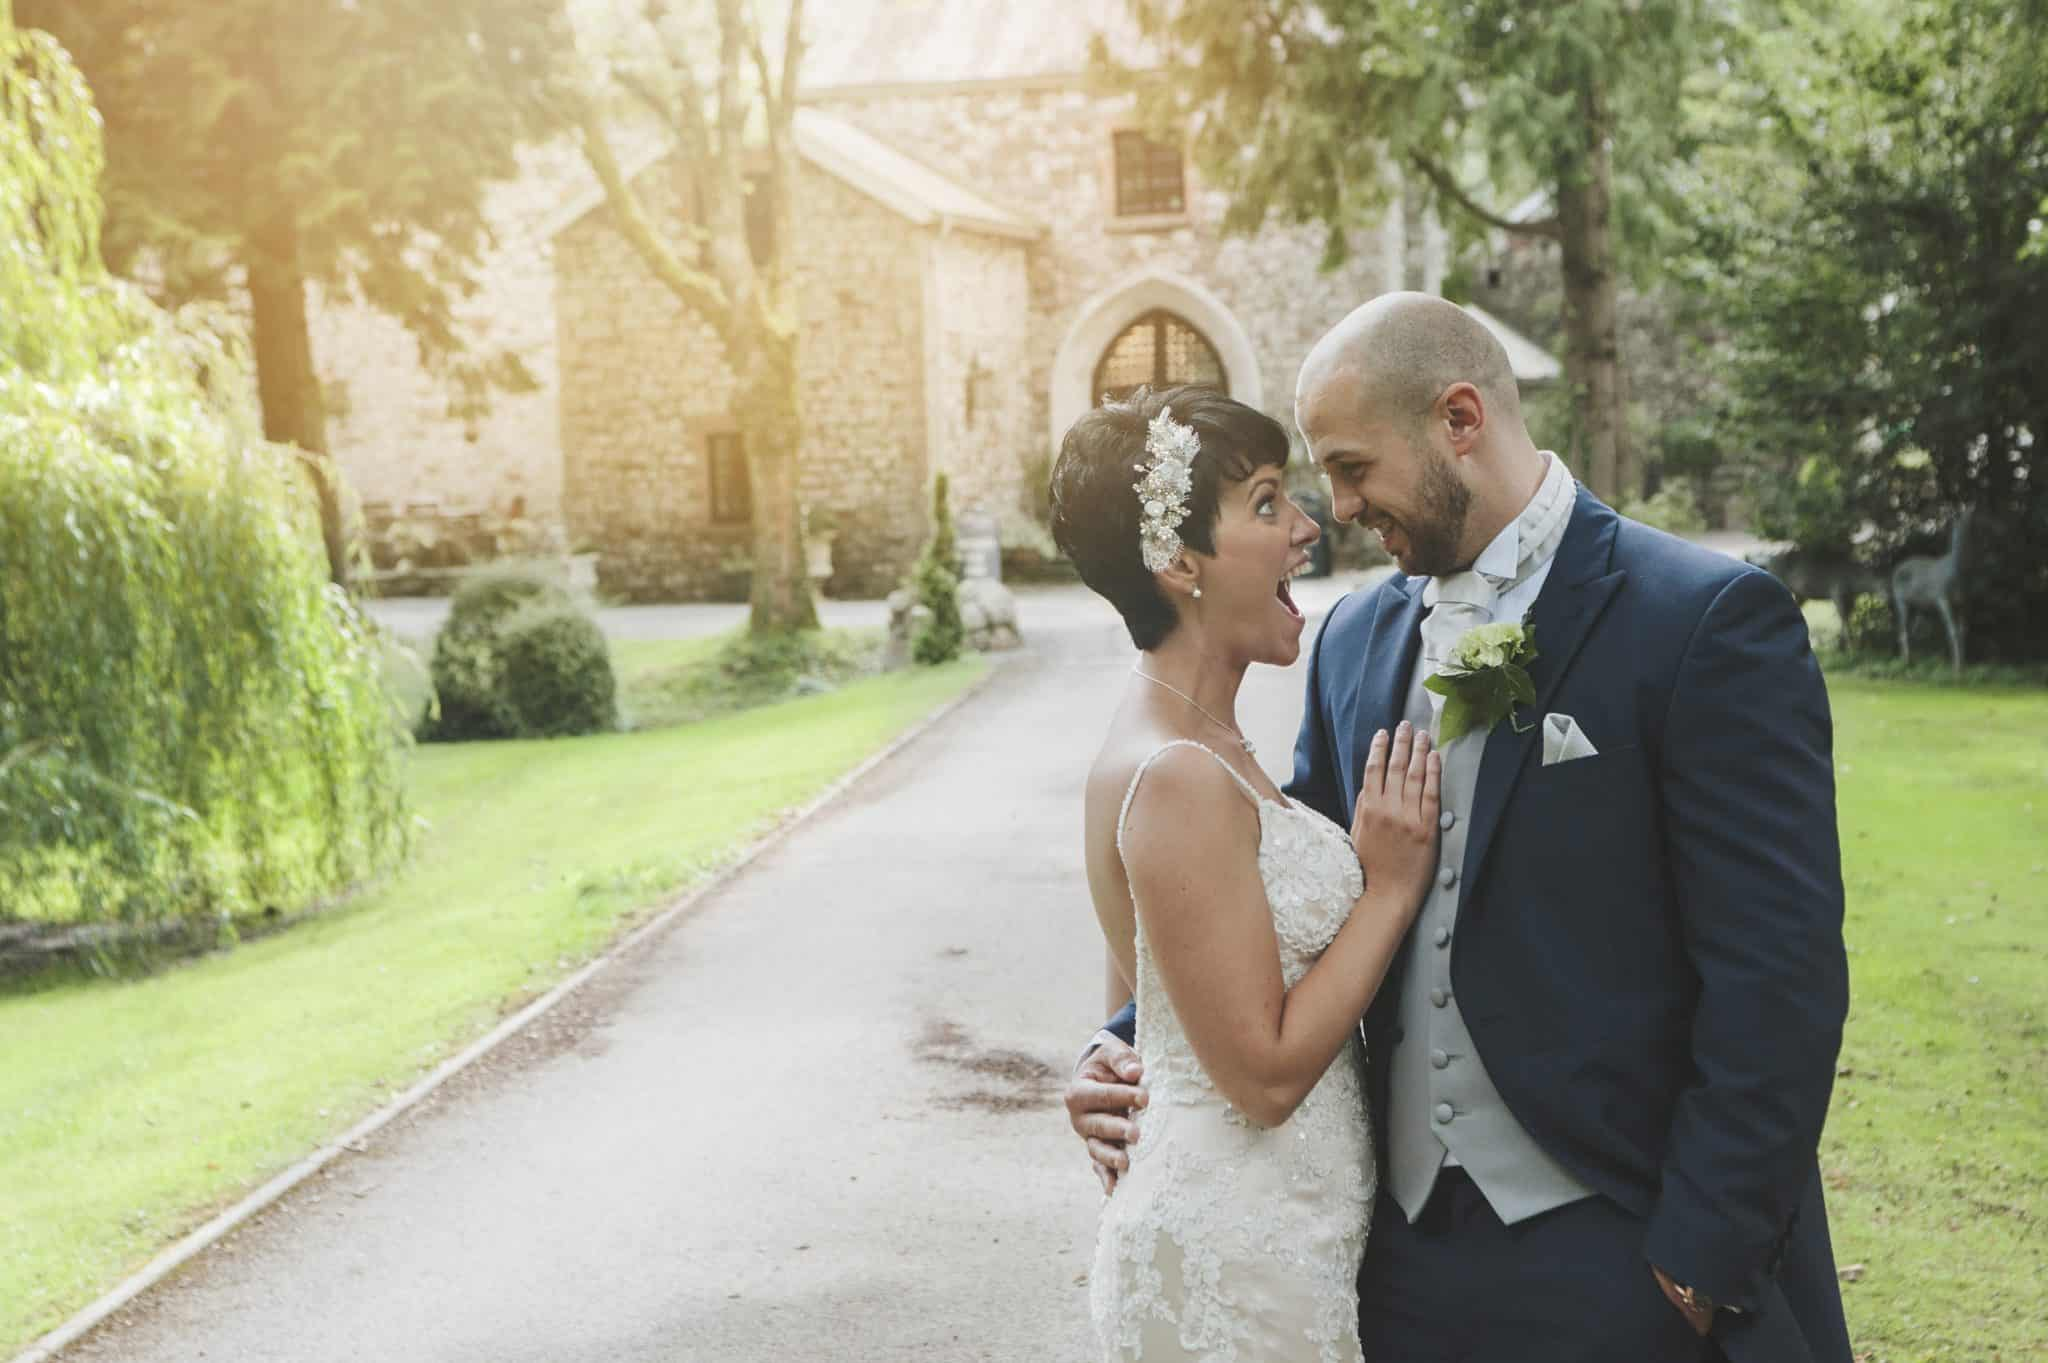 Pencoed House Wedding - Bride laughing at groom stood on drive way to a country house